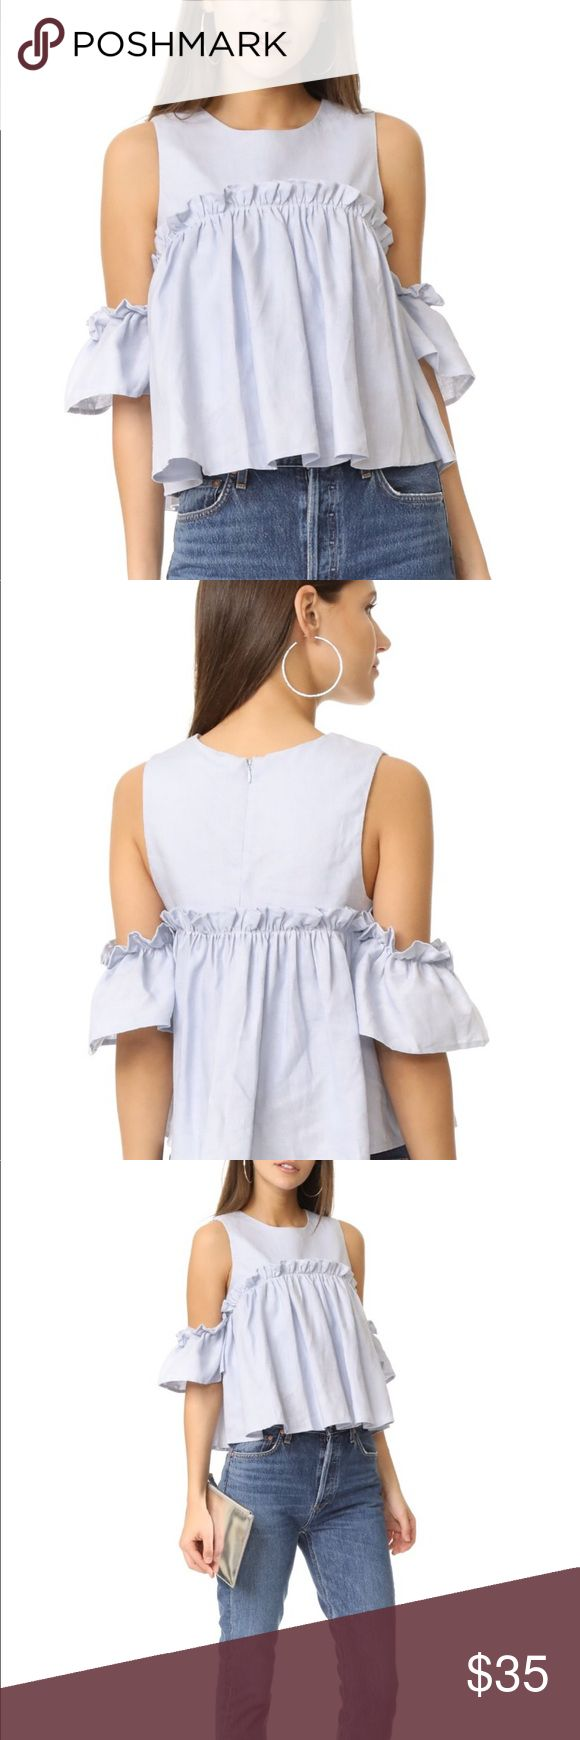 JOA Ruffle cold shoulder Top- Price Firm JOA Ruffle cold shoulder Top in light blue from Shopbop. EUC worn once. Just dry cleaned. Crisp linen blouse with draped ruffle overlay, semi attached ruffle sleeves. Lined. This is a GORGEOUS top! PRICE FIRM. Bundle for discount!! J.O.A Tops Blouses